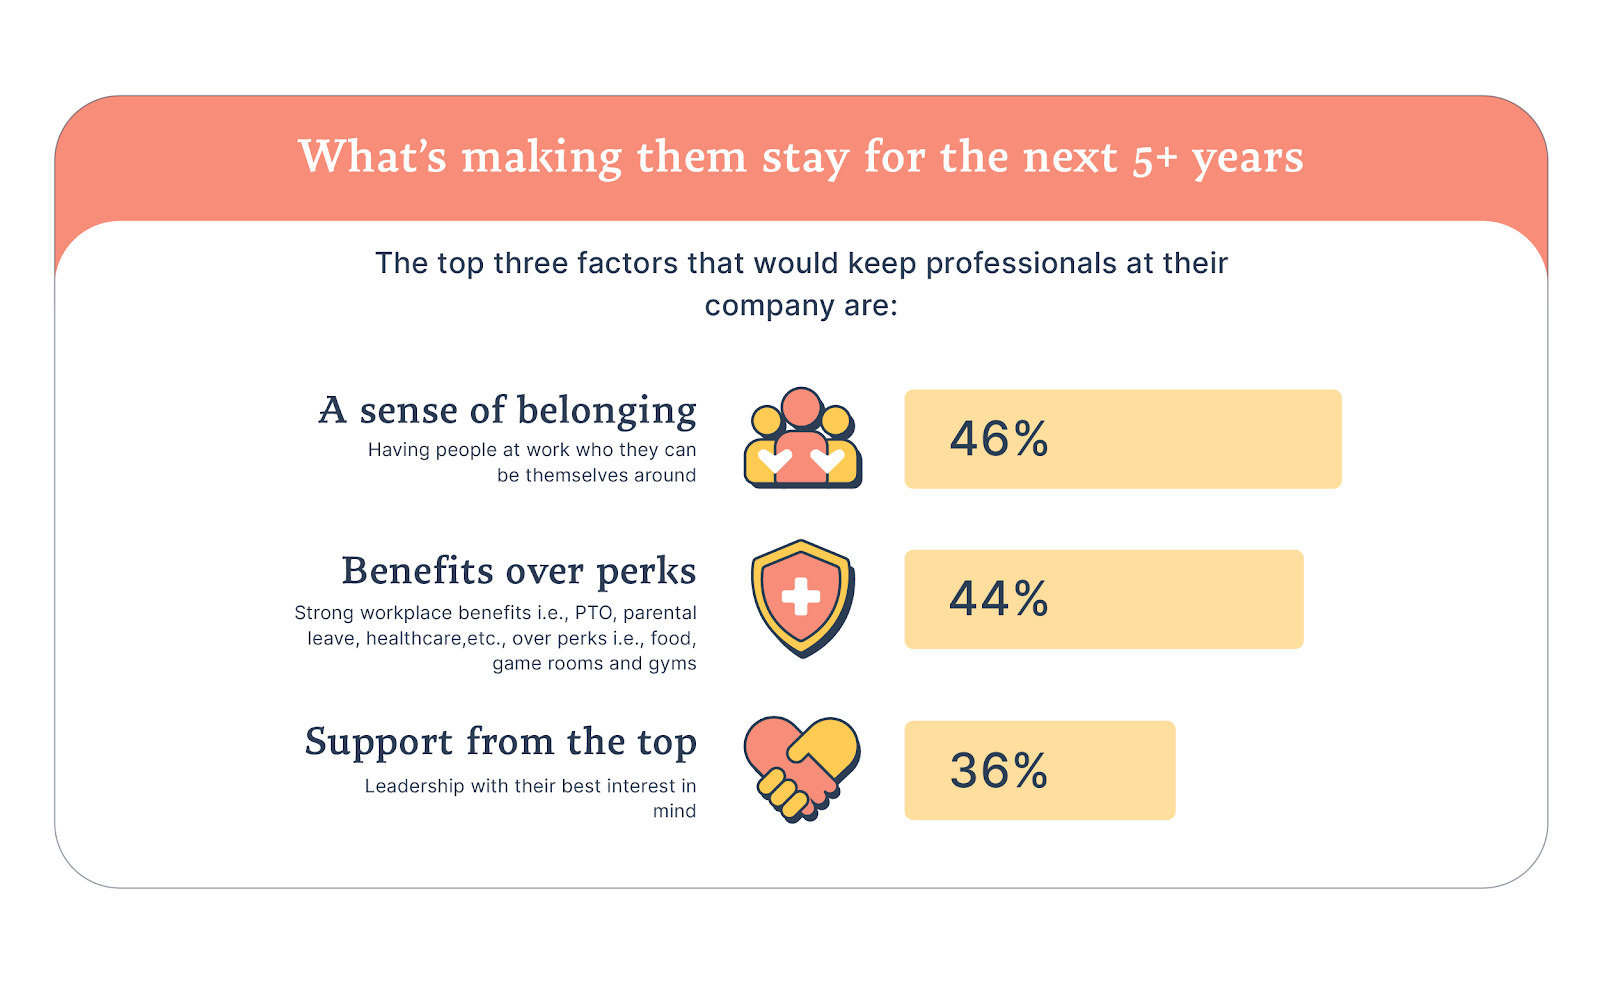 Top three factors that make employees stay; build company culture